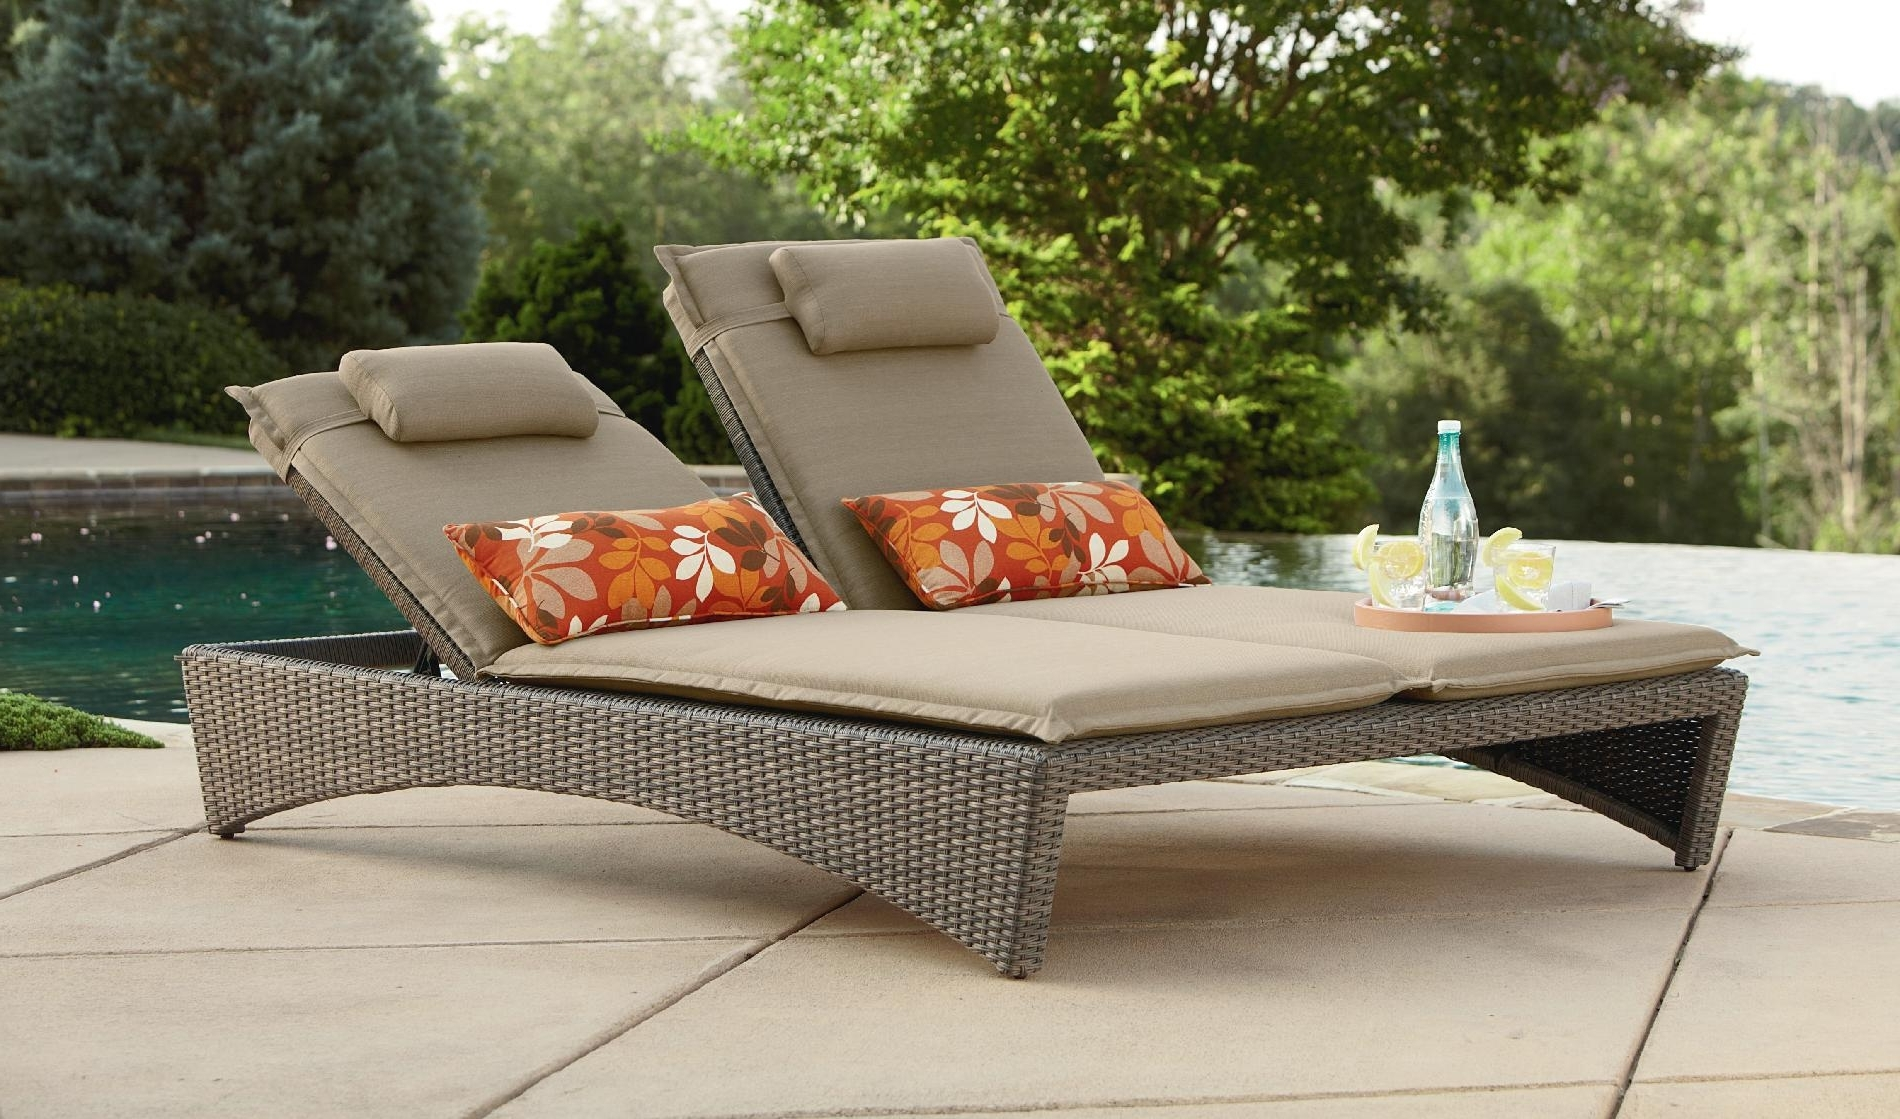 Double Chaise Lounge Outdoor Chairs Regarding Well Liked Picture 3 Of 35 – Walmart Patio Lounge Chairs Luxury Patio (View 7 of 15)